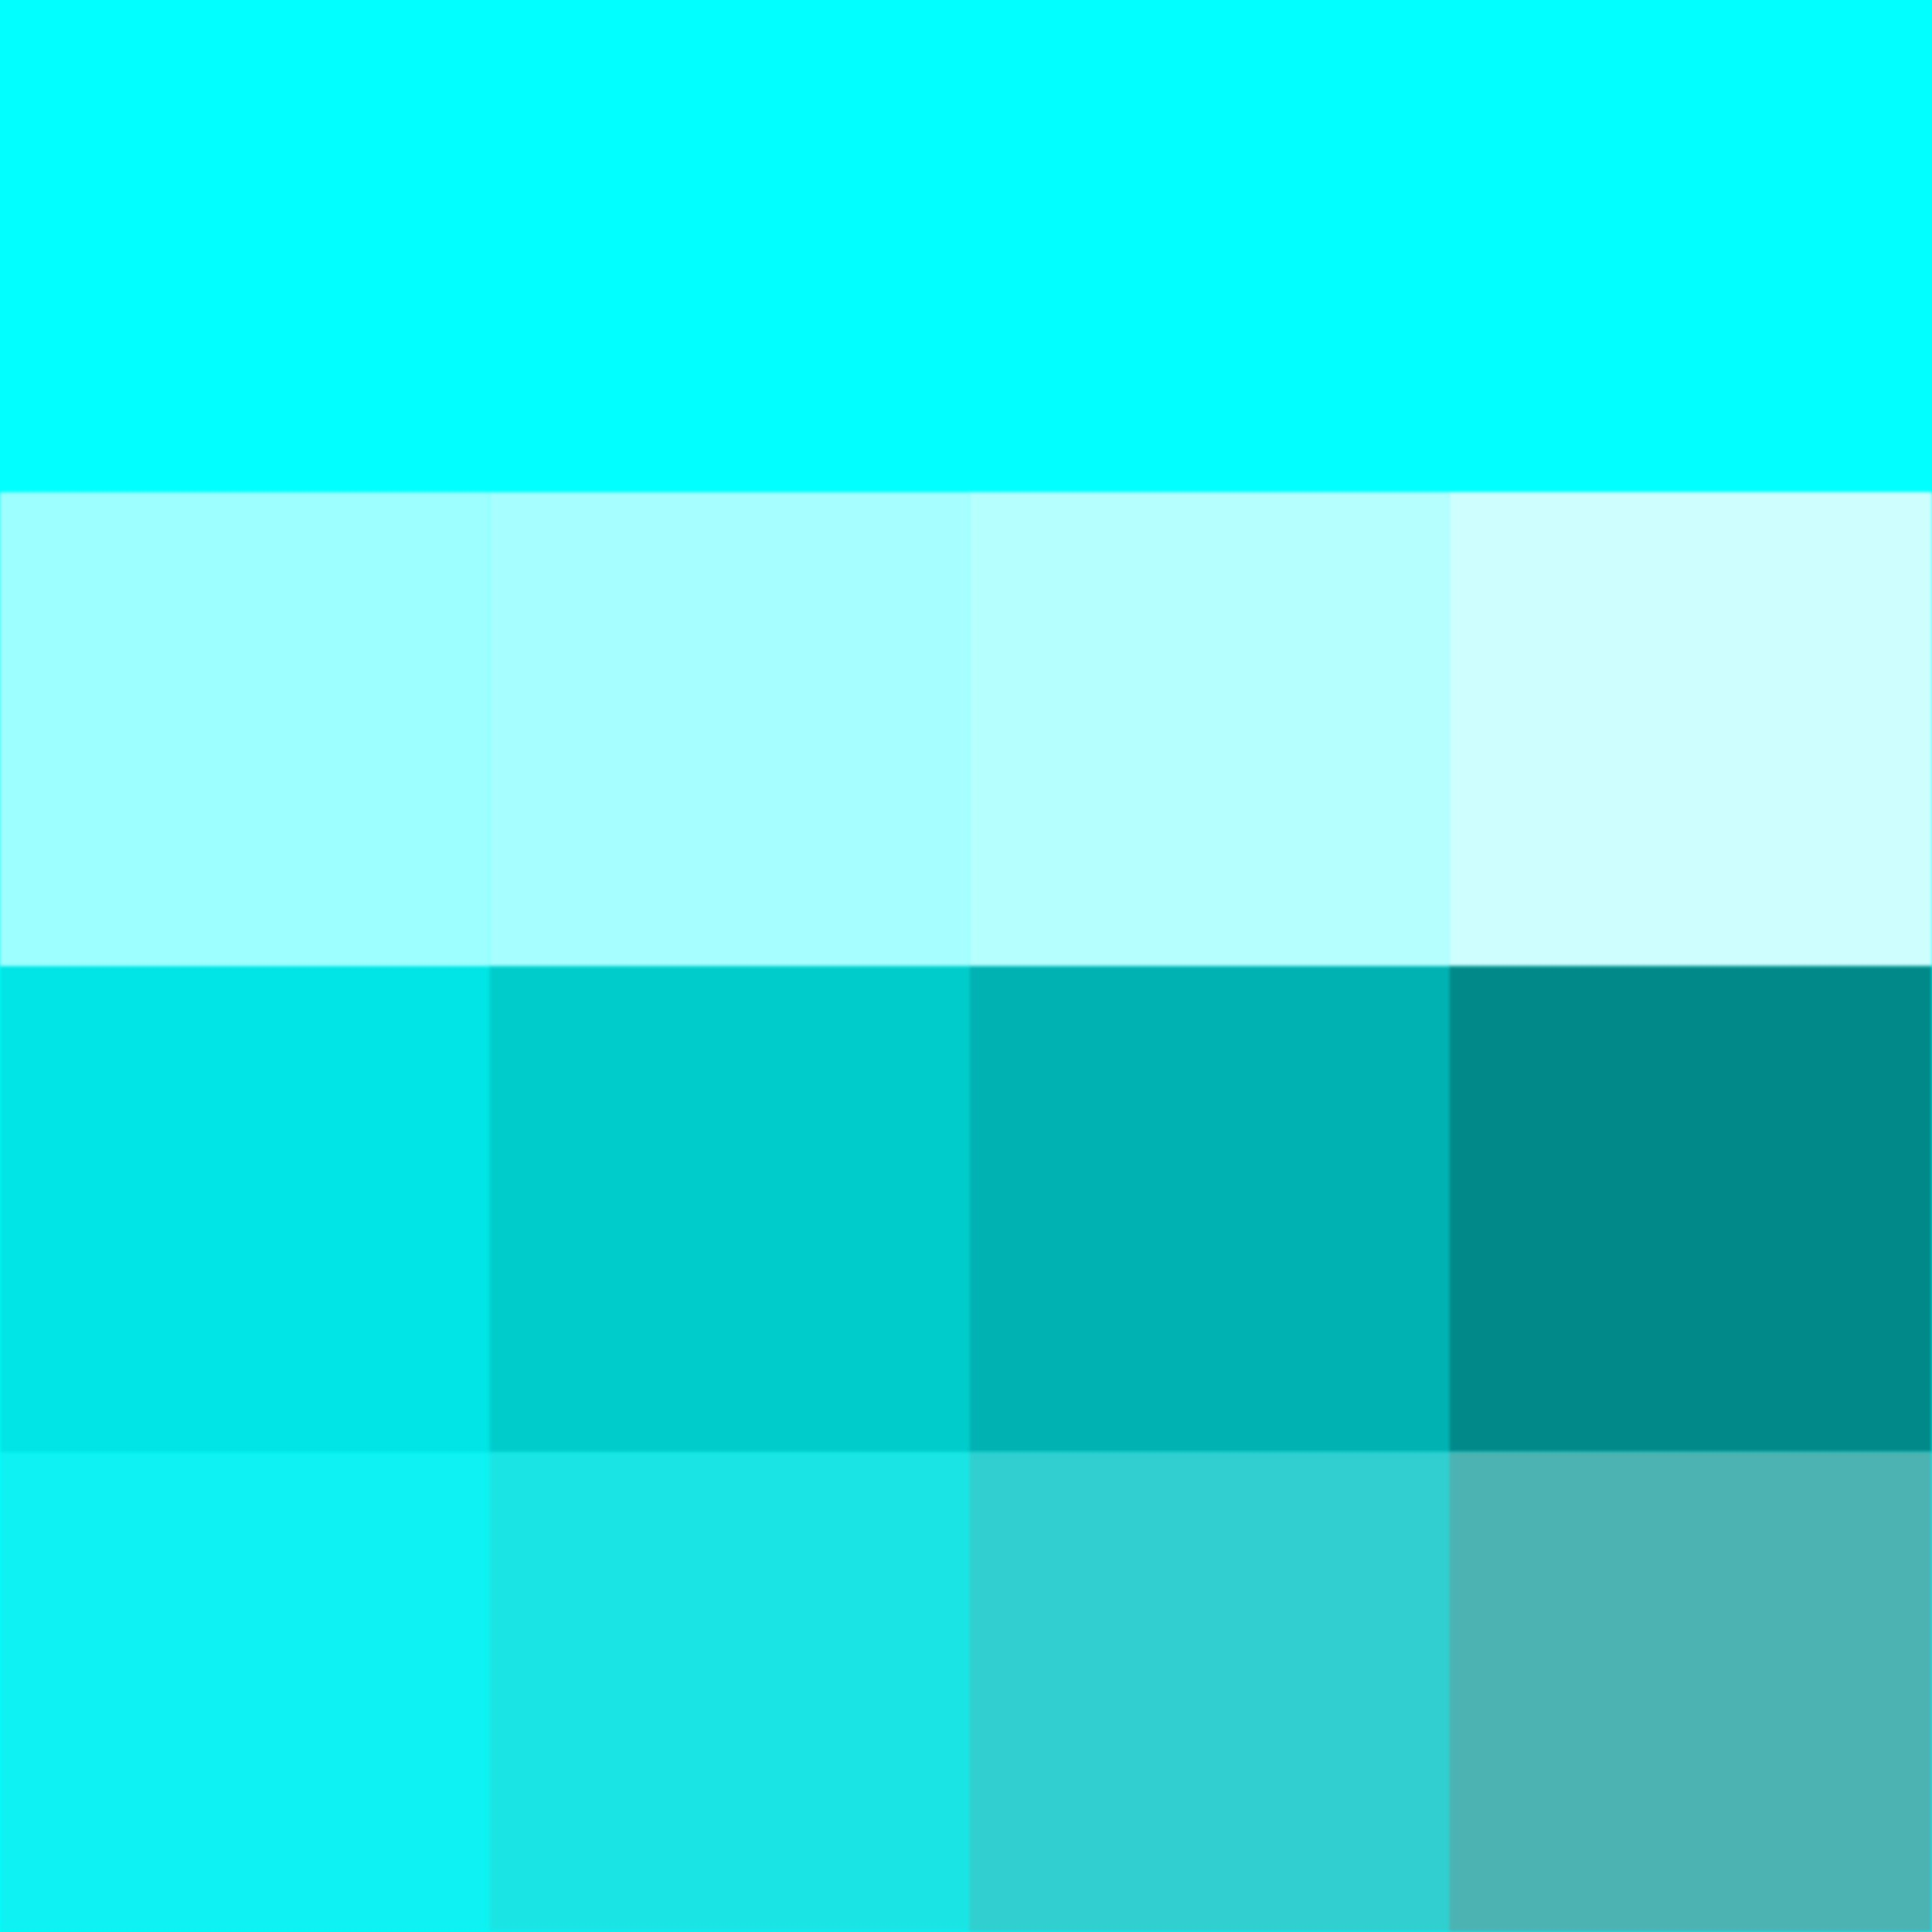 Aqua Shades Hue Pure Color With Tints Hue White Shades Hue Black And Tones Hue Grey Which Desaturates The Color Teal Colors Color Analysis